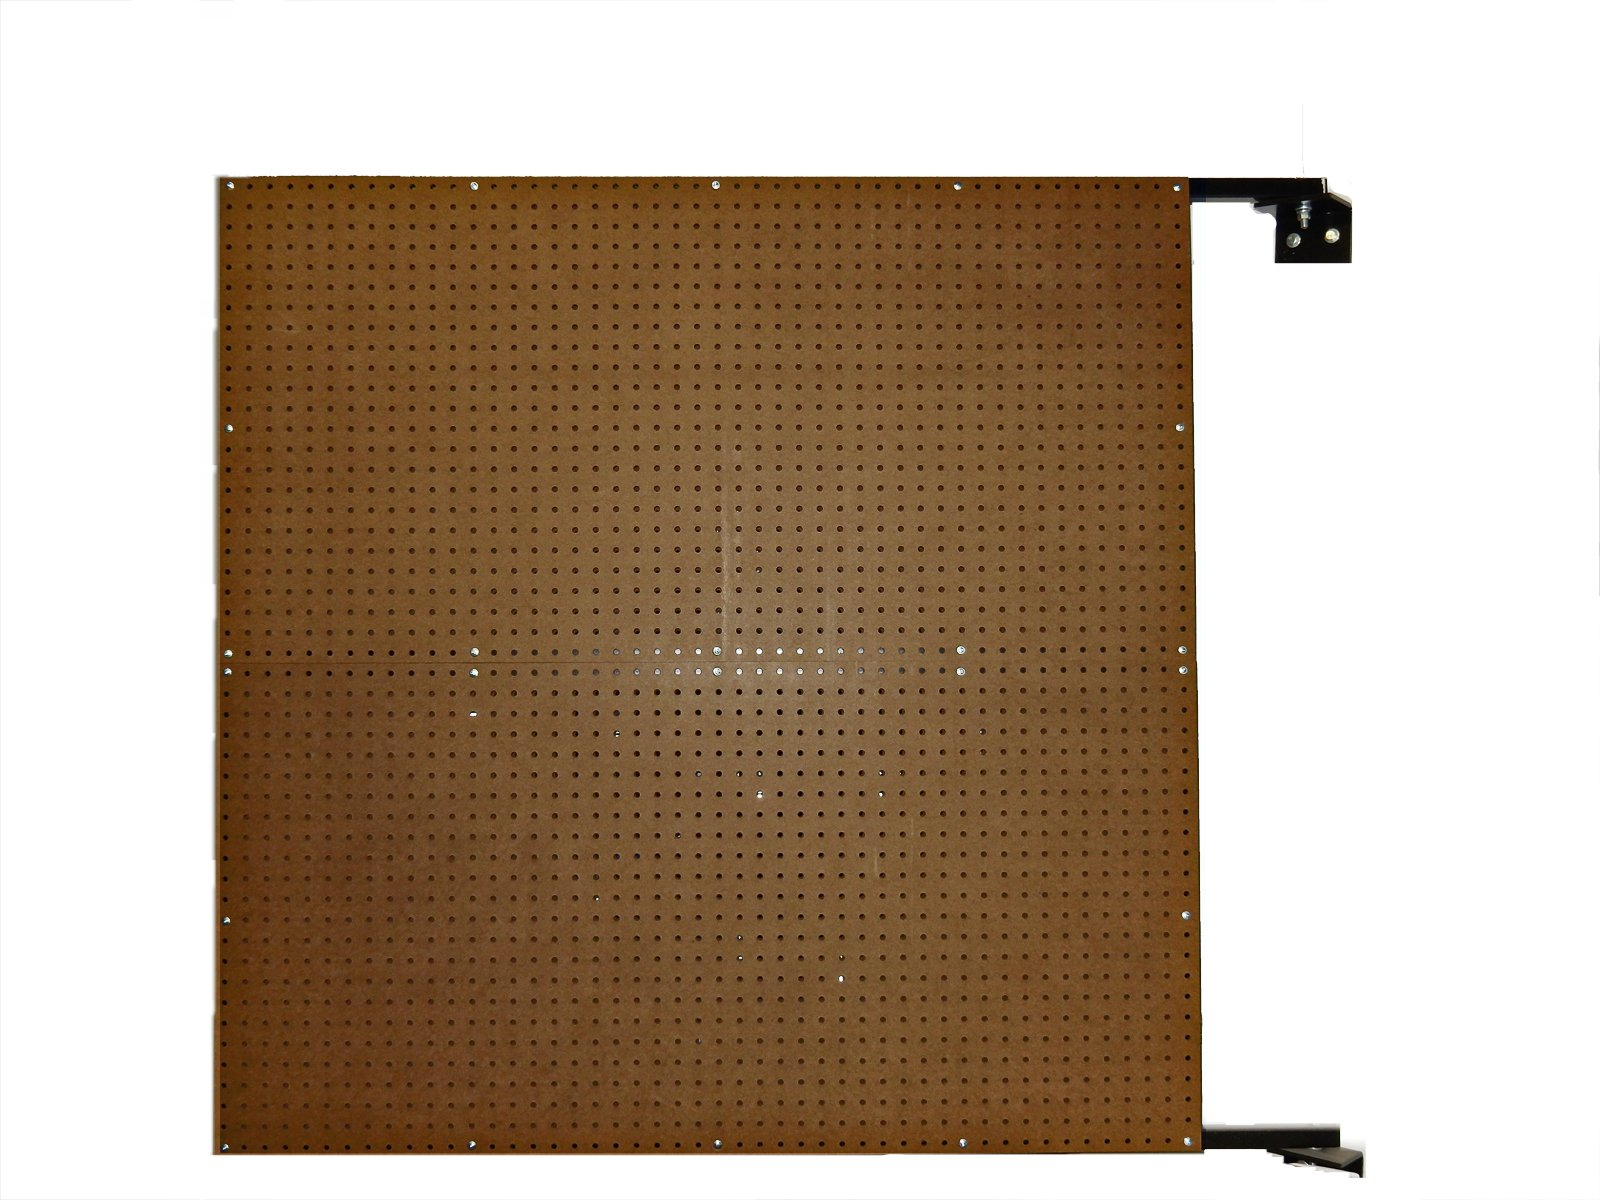 Triton Products D1 XtraWall Wall Mount Double-Sided Swing Panel Pegboard 48-Inch W by 48-Inch H by 1-1/2-Inch D